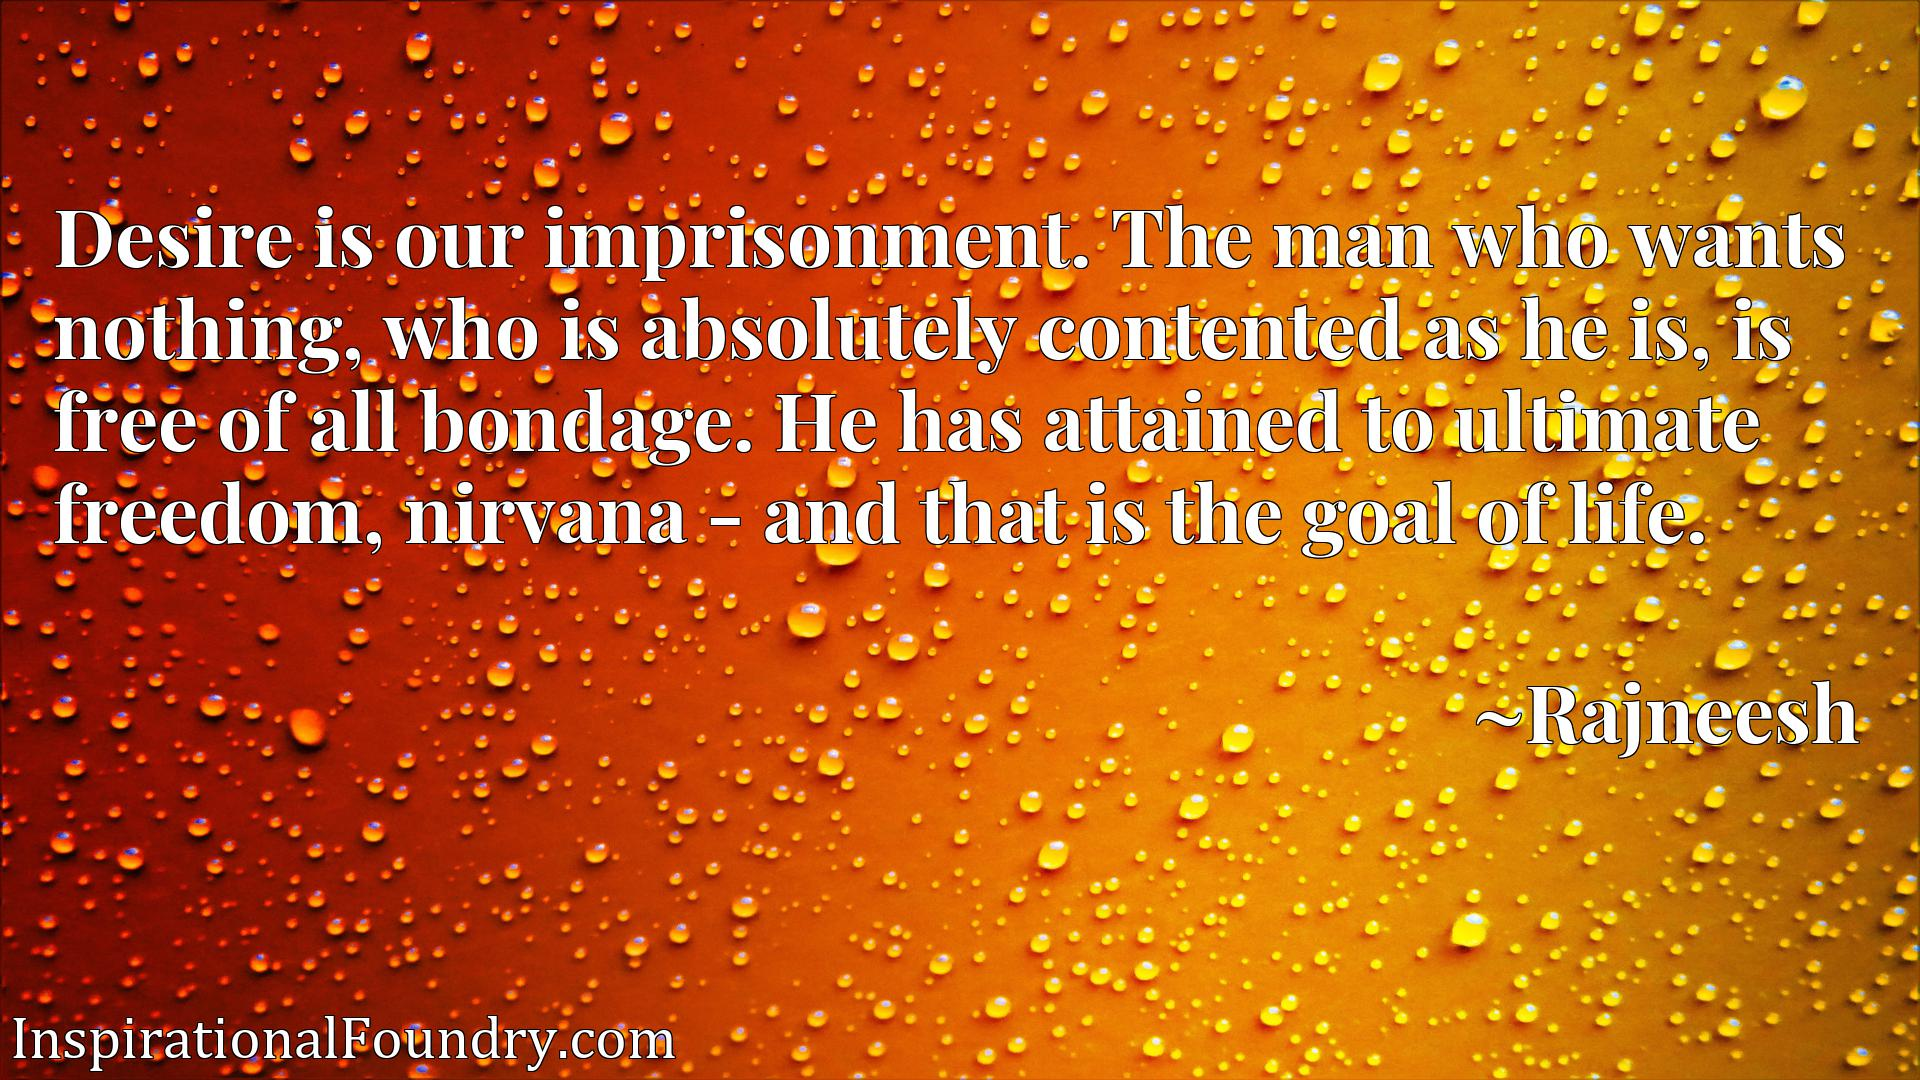 Quote Picture :Desire is our imprisonment. The man who wants nothing, who is absolutely contented as he is, is free of all bondage. He has attained to ultimate freedom, nirvana - and that is the goal of life.